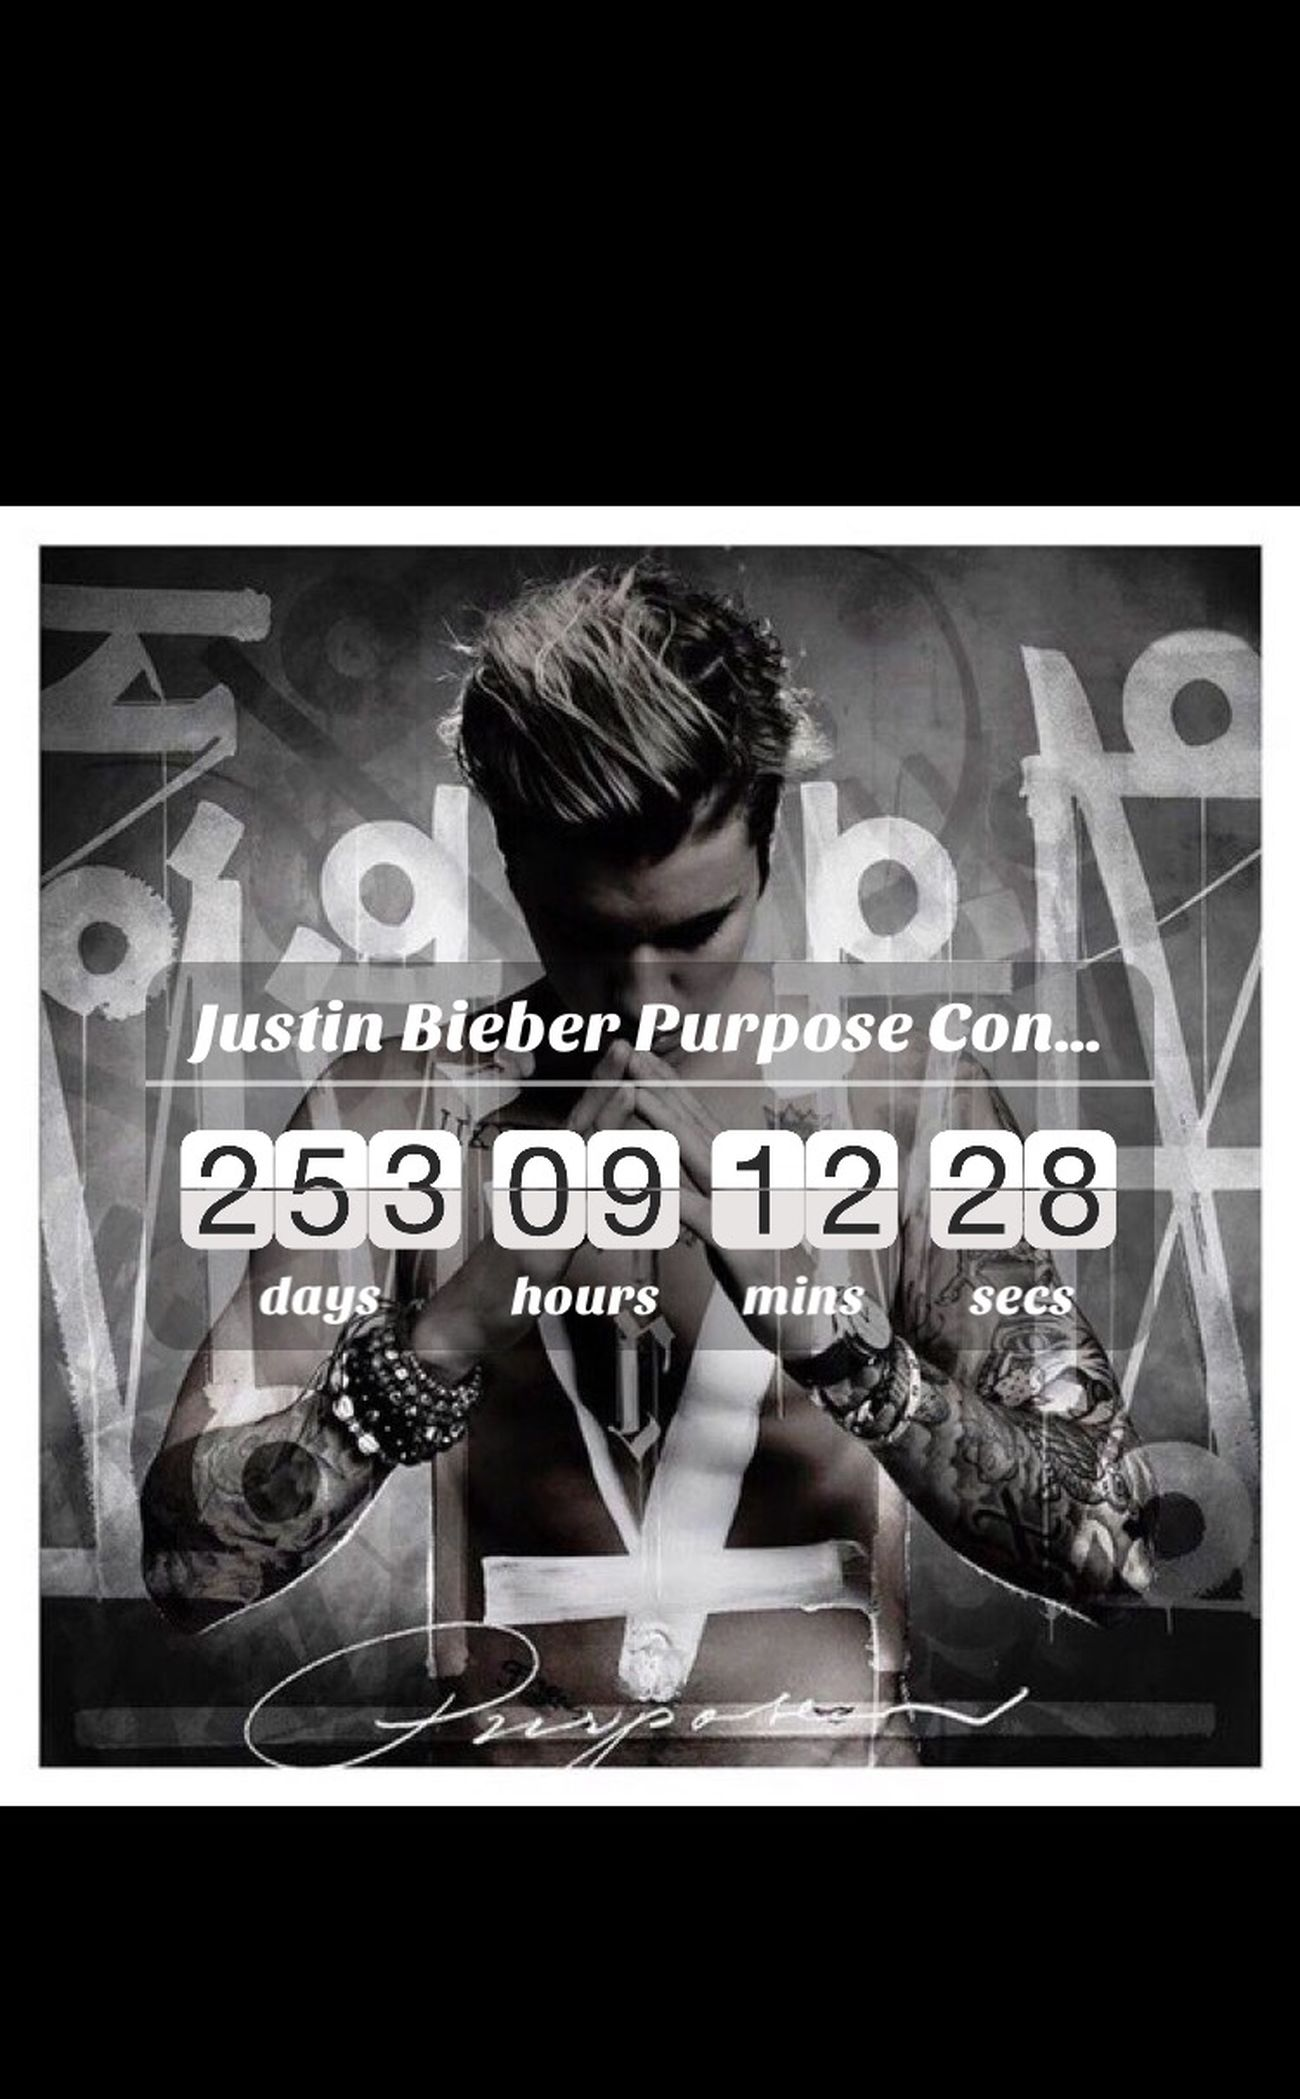 253 dayzzz Justinbieber Justin Bieber Purpose Justin Bieber <3 Worldtour Germany Colonge Lanxess Arena Concert LiveConcert Ouuuuu #justinbieberconcert  WhereAreÜNow Sorry LoveYourself JustinDrewBieber Love Music Whatdoyoumean Justin Bieber ♥ BieberFever Justin Bieber Concert Belieber PurposeWorldTour PurposeTourGermany PurposeTourColonge